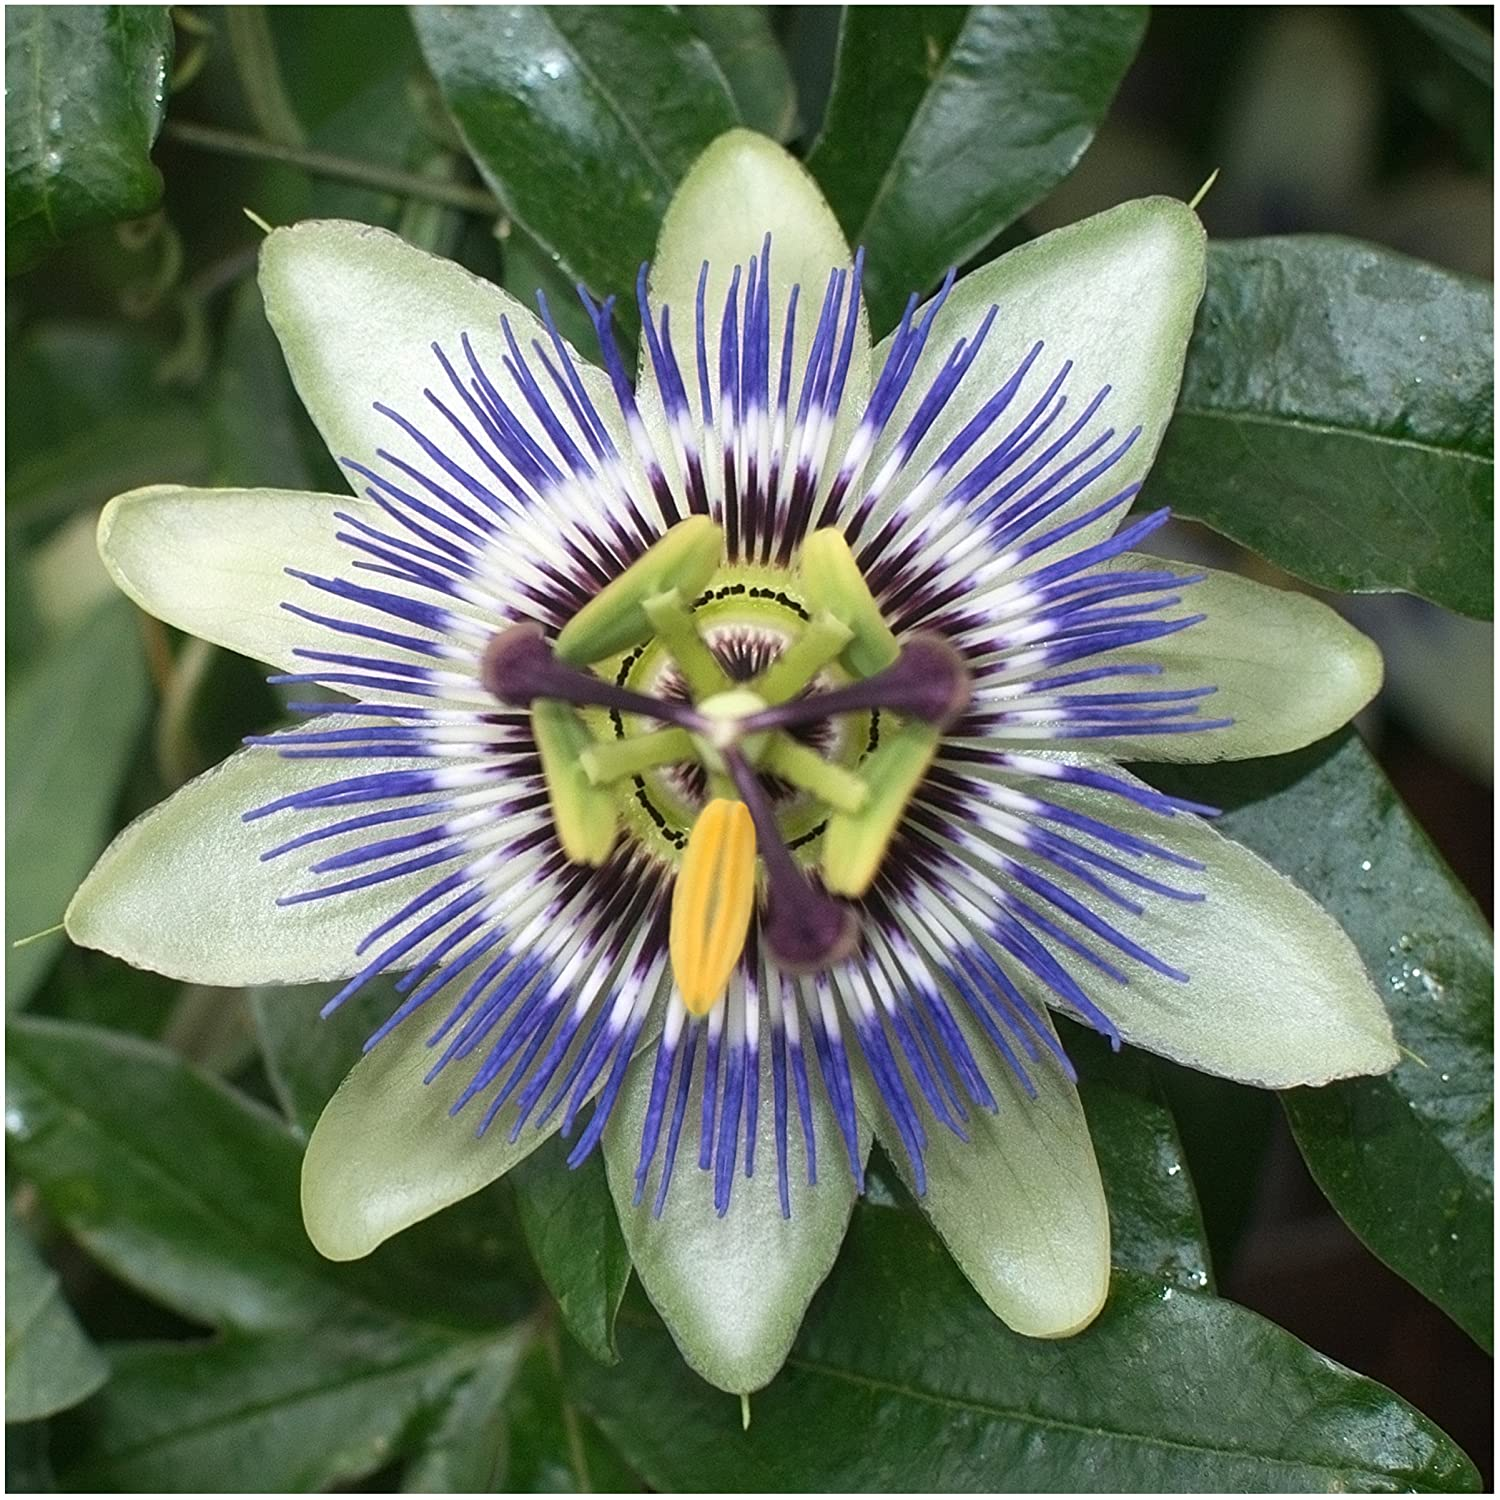 Amazon package of 100 seeds royal blue passion flower amazon package of 100 seeds royal blue passion flower passiflora caerulea non gmo seeds by seed needs flowering plants garden outdoor izmirmasajfo Images